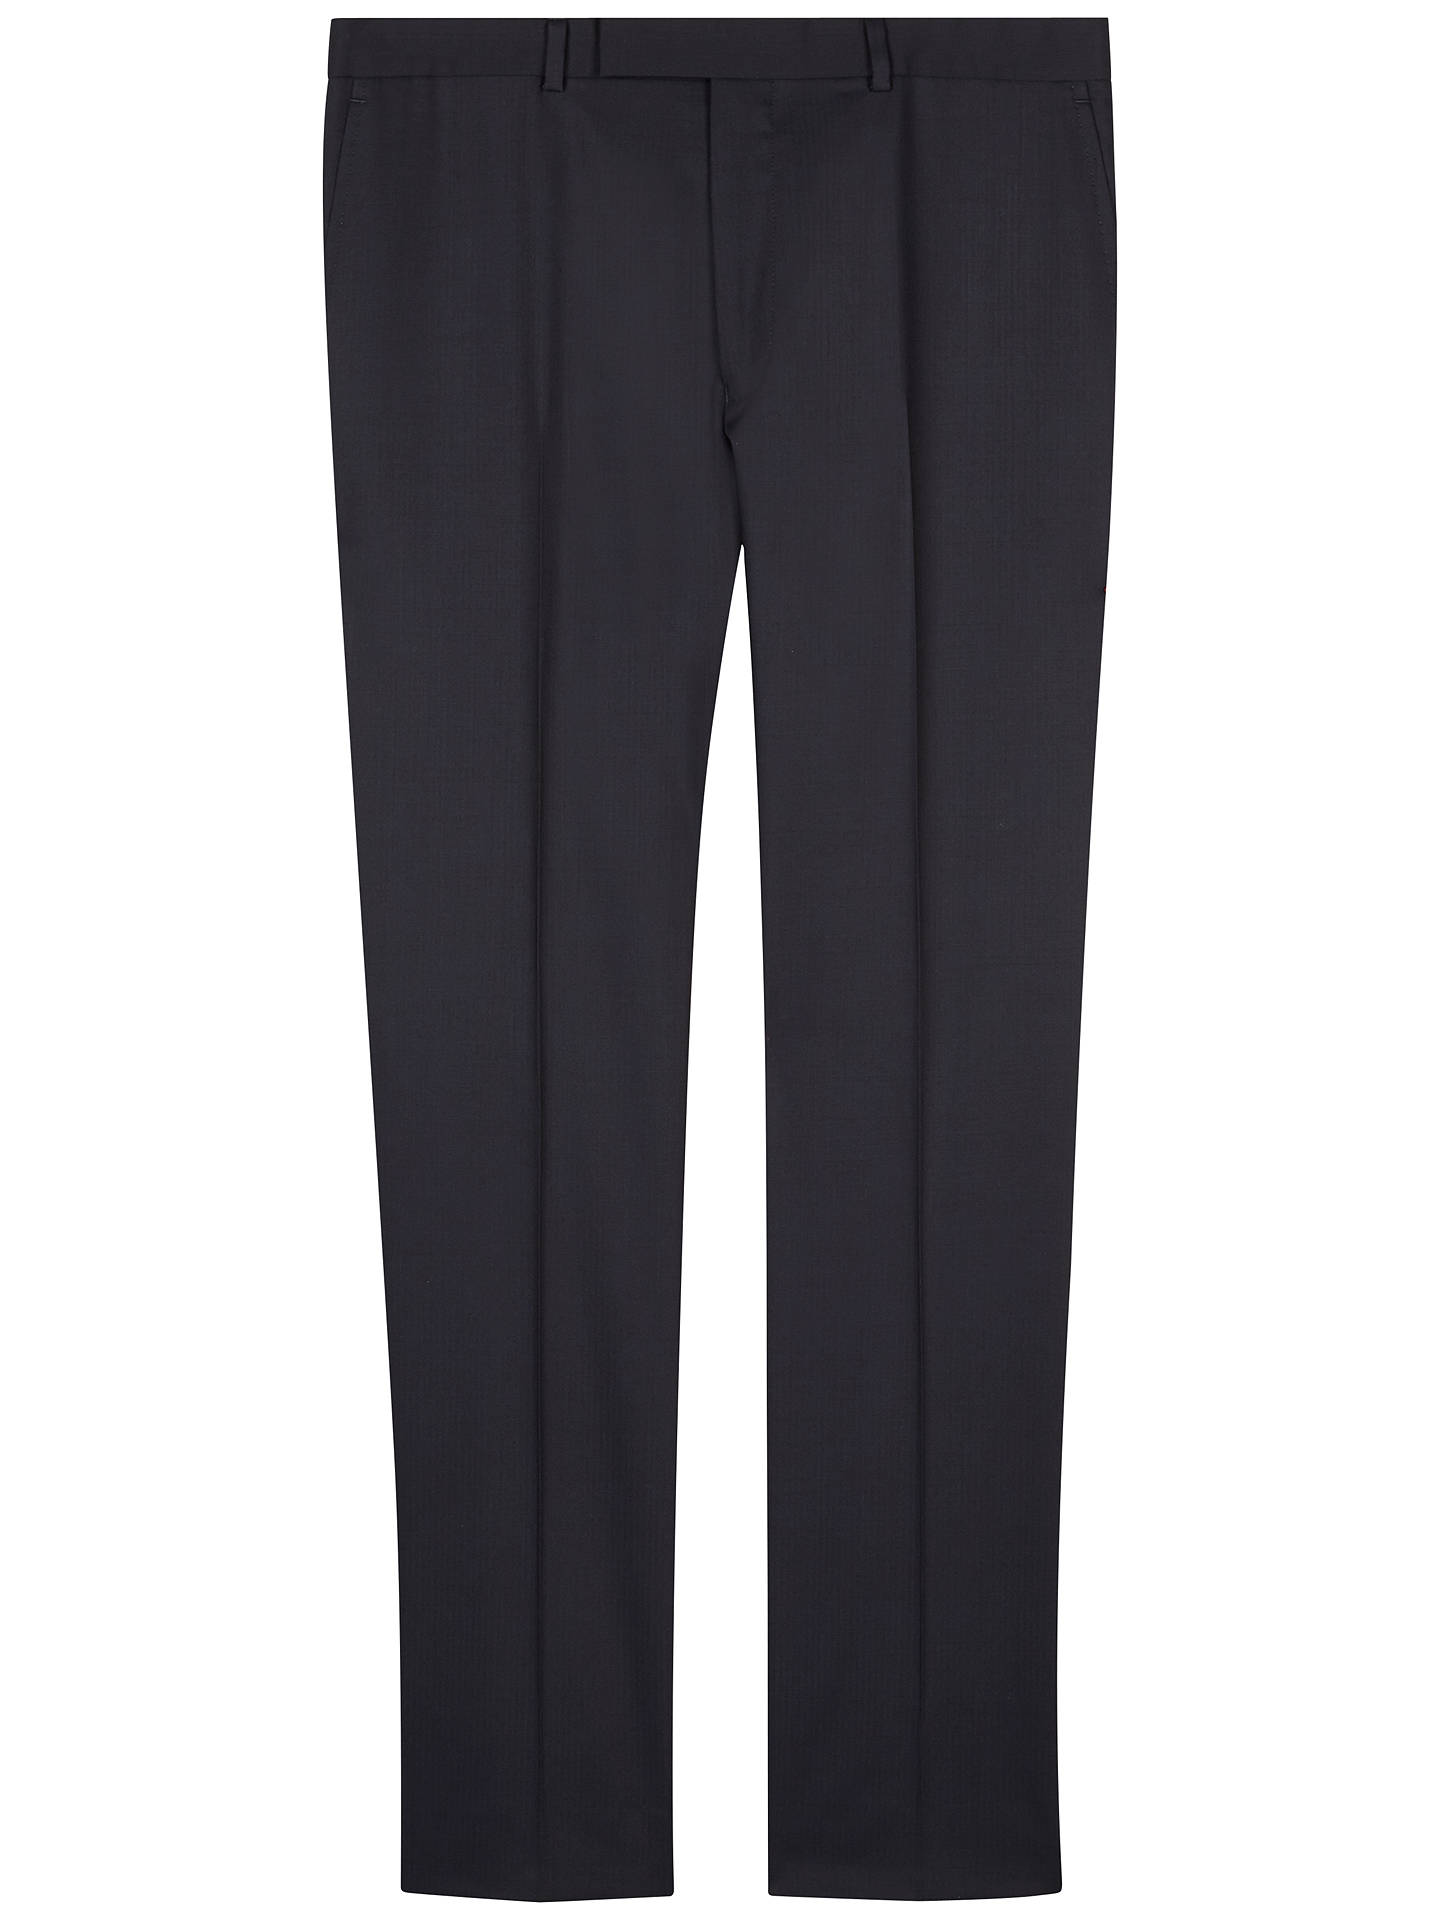 bc54d5e455d7 Buy Jaeger Wool Pick and Pick Regular Suit Trousers, Charcoal, 32R Online  at johnlewis ...